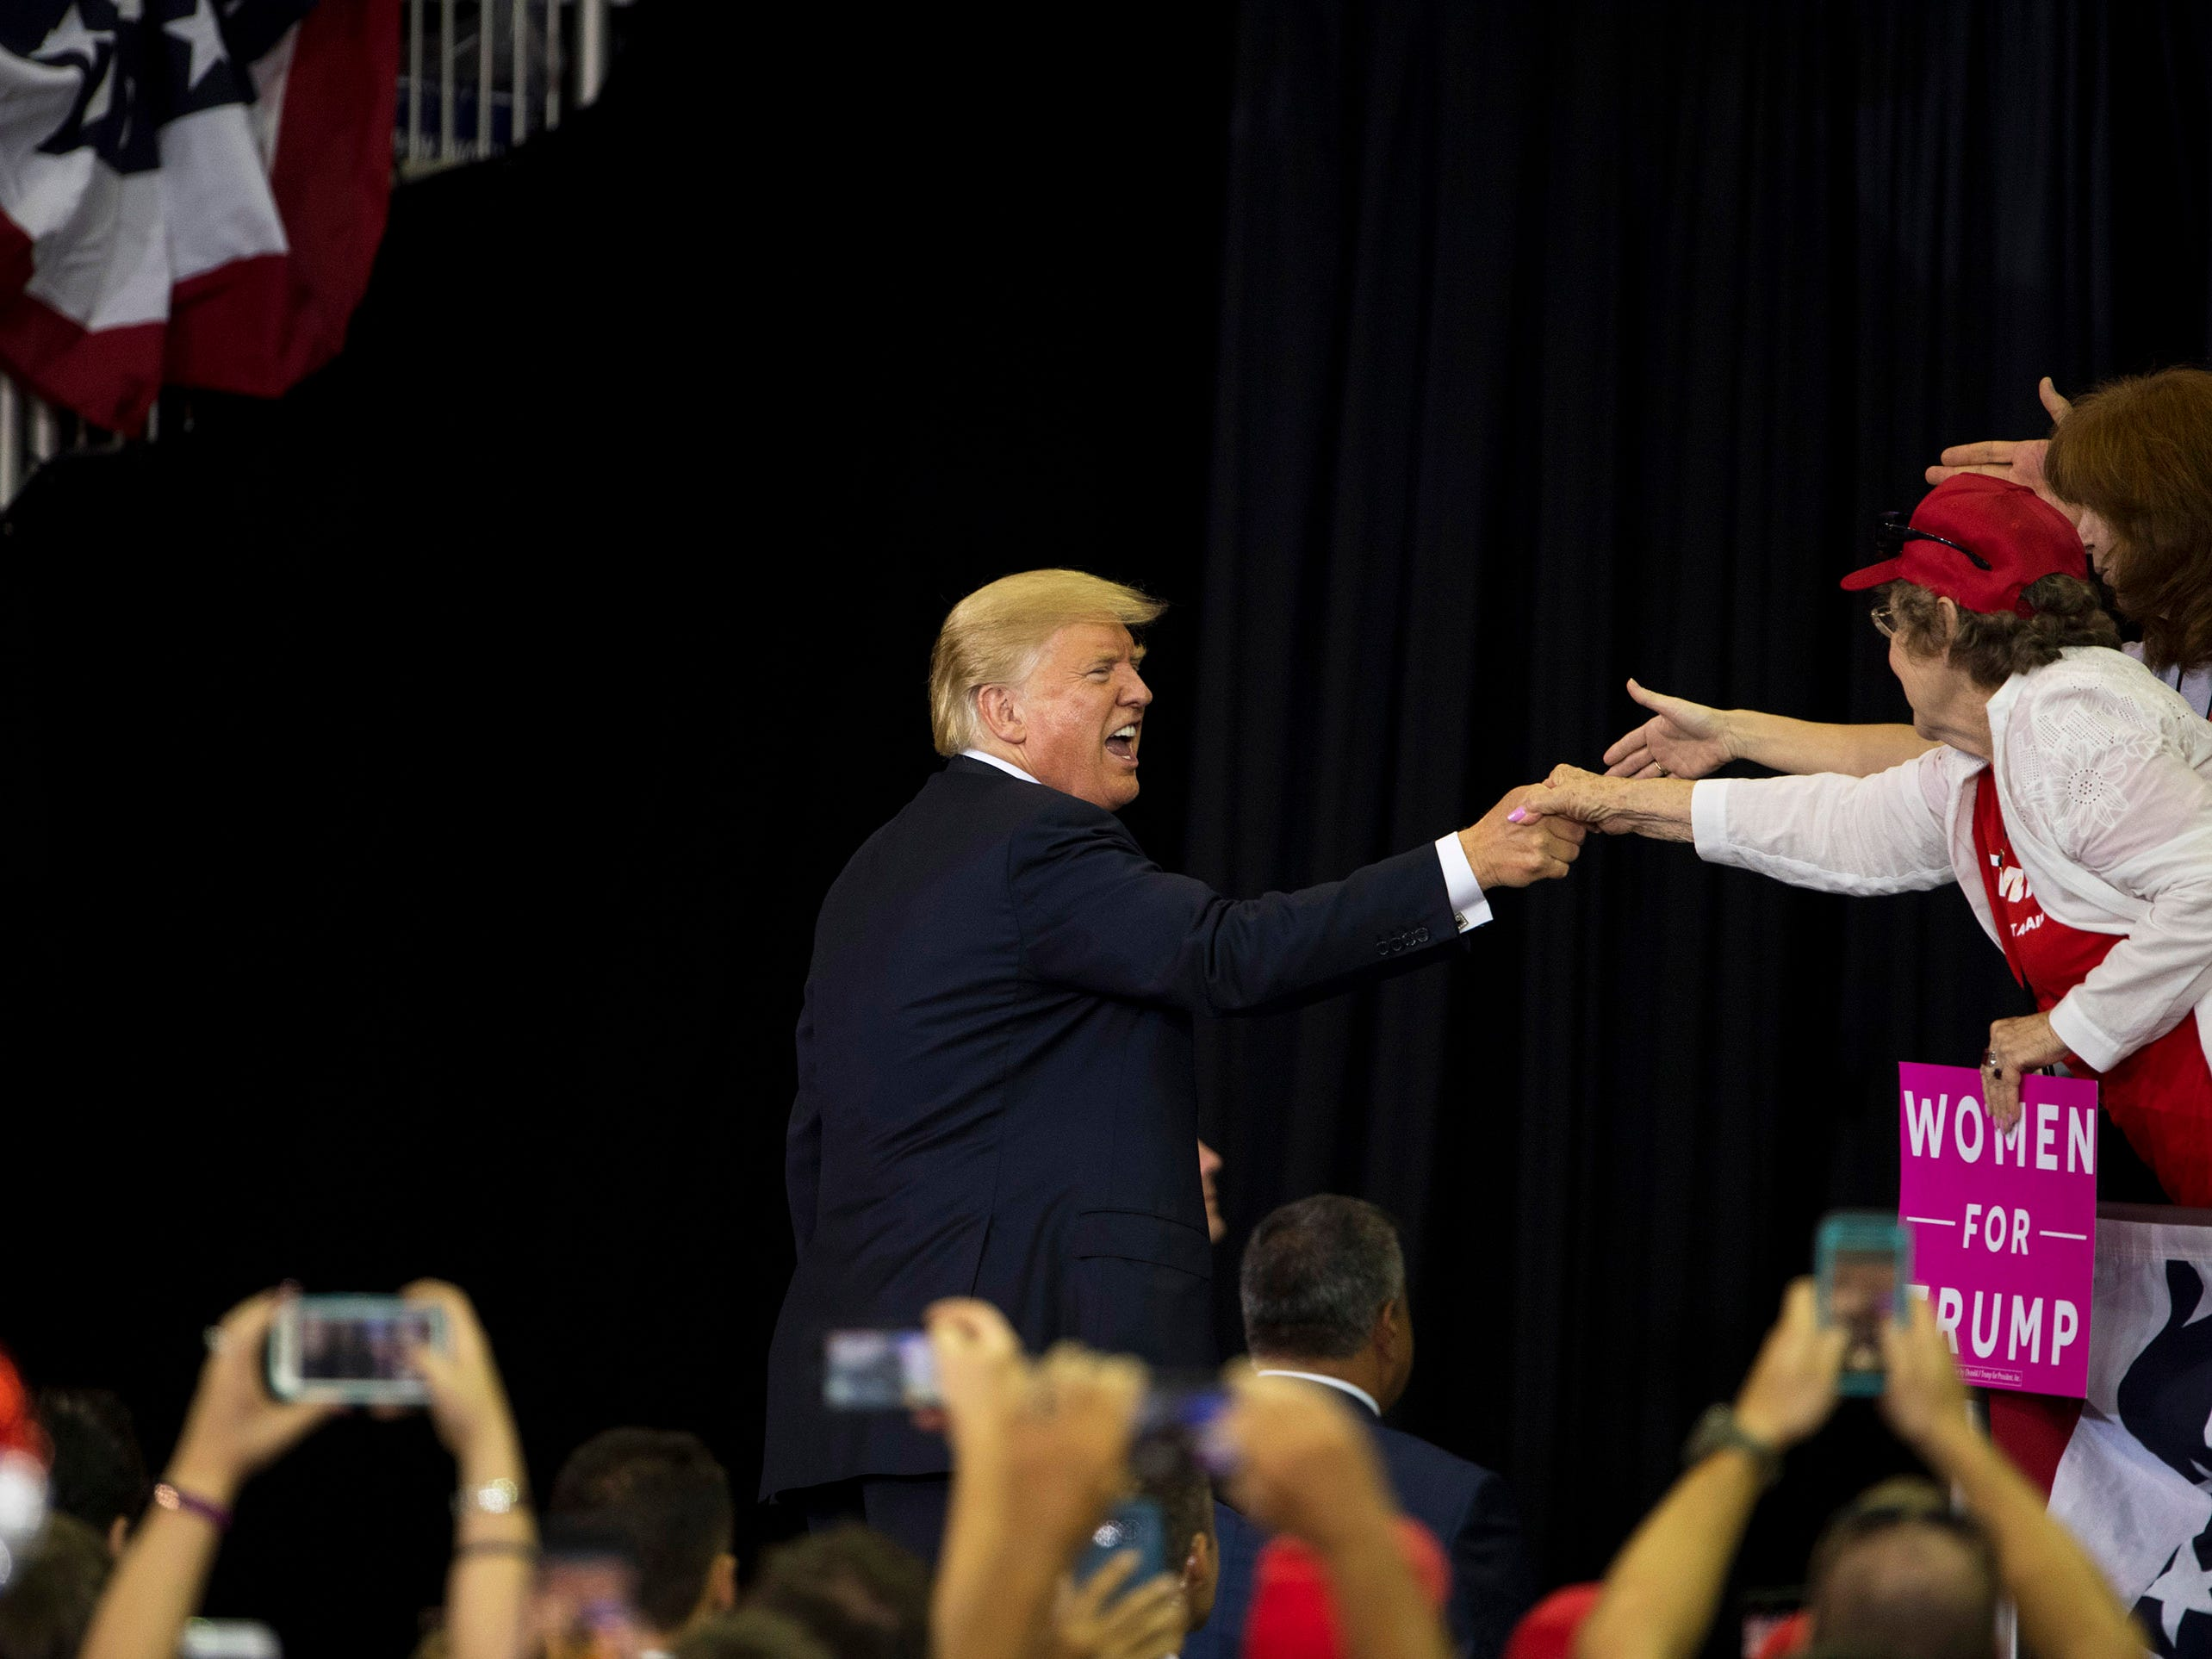 President Donald Trump shakes hands as he exits the stage after his campaign rally at the Ford Center in Evansville, Ind., Thursday night, August 30, 2018.